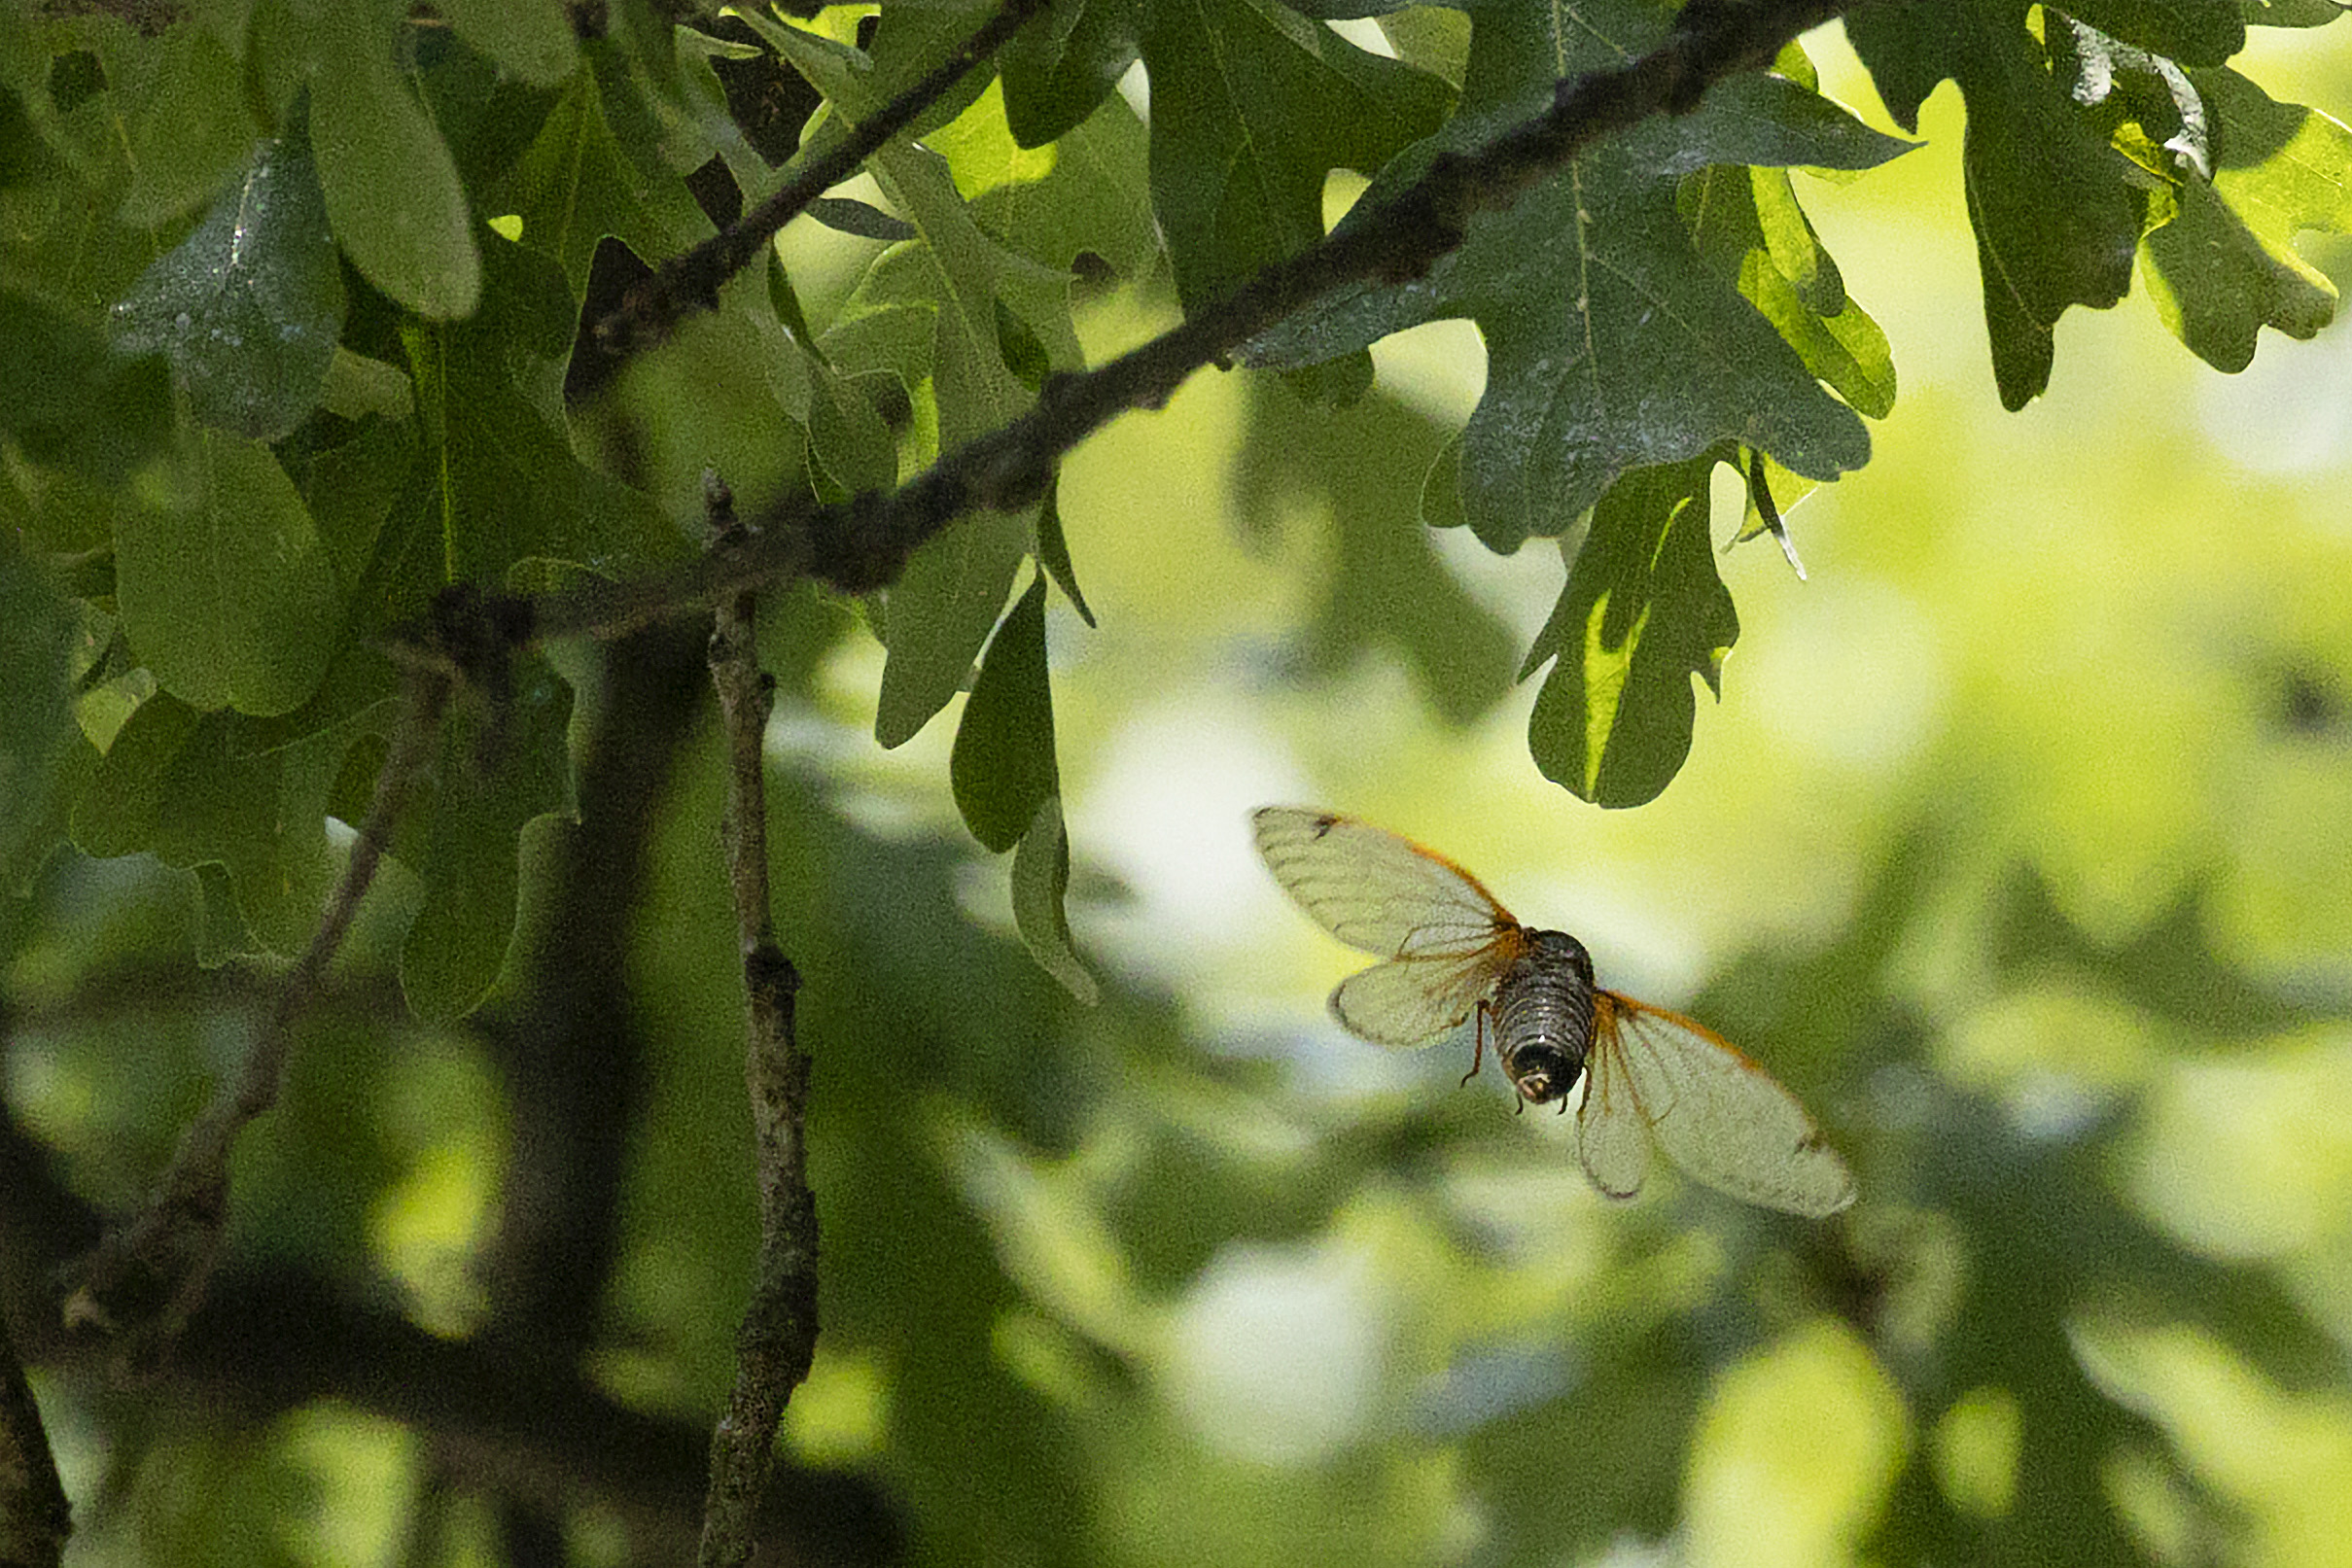 A cicada flies near the branches of a tree, as sunlight hits the leaves behind it.